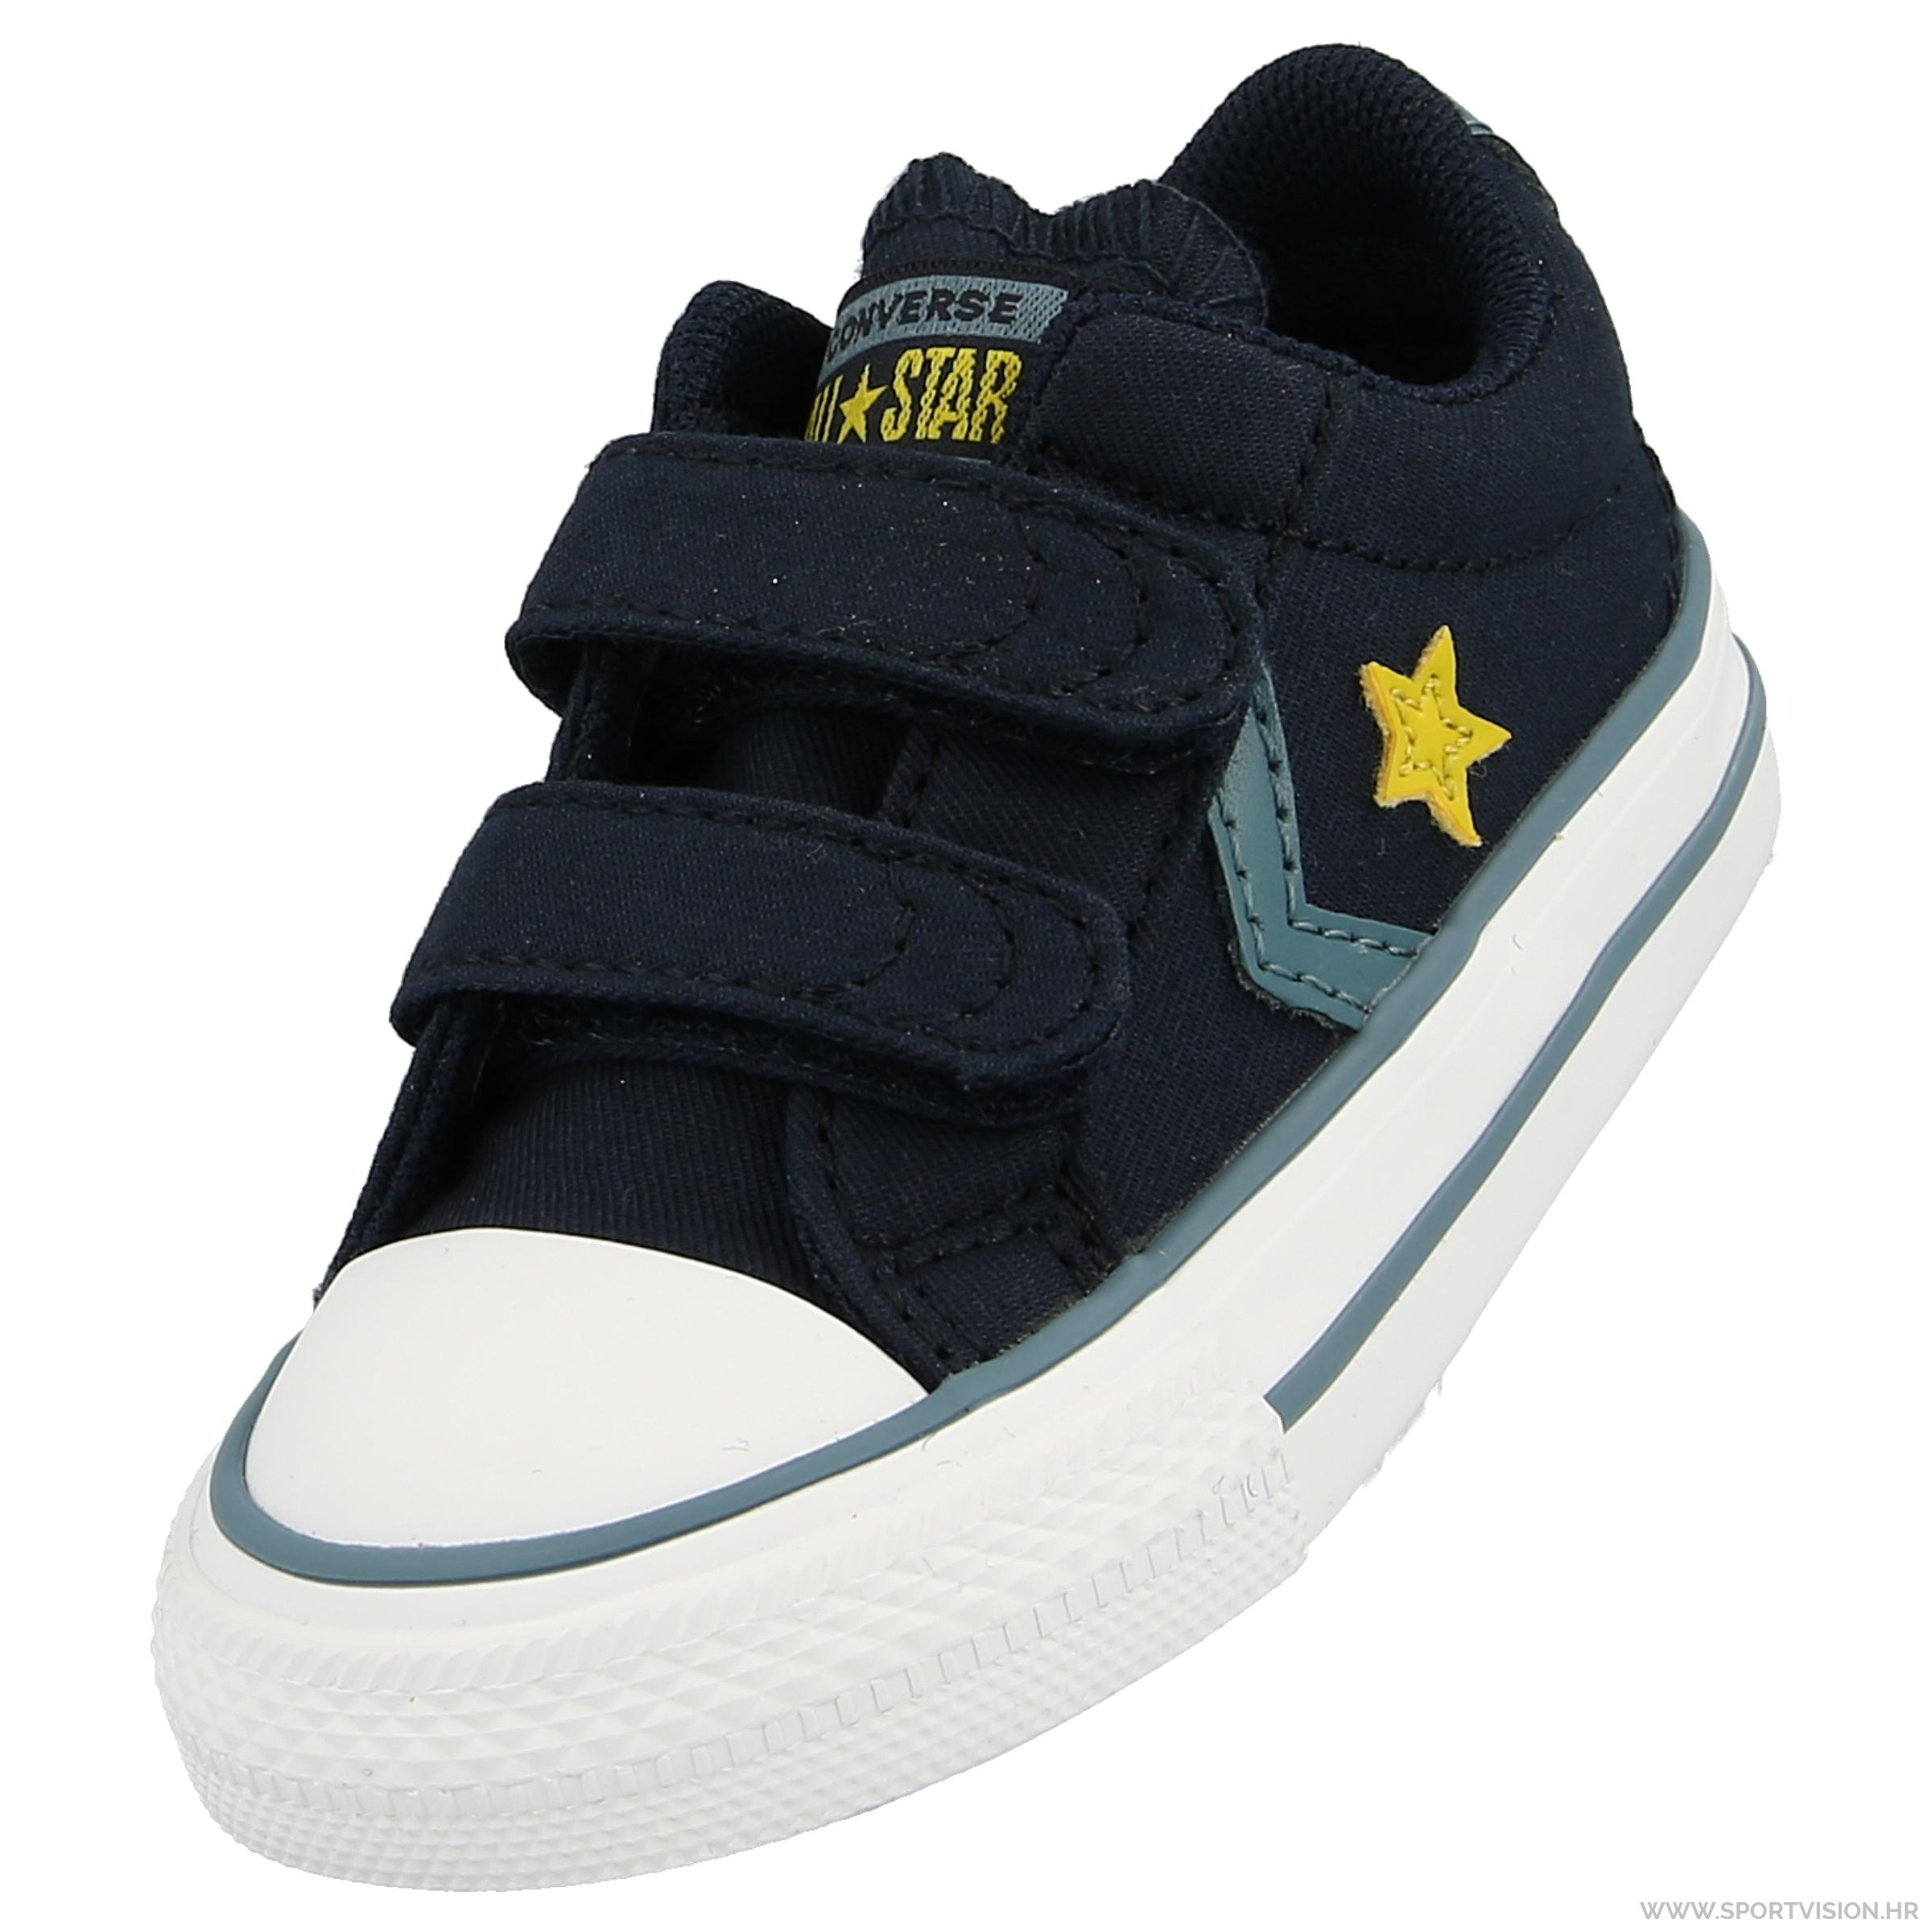 CONVERSE tenisice STAR PLAYER 2V